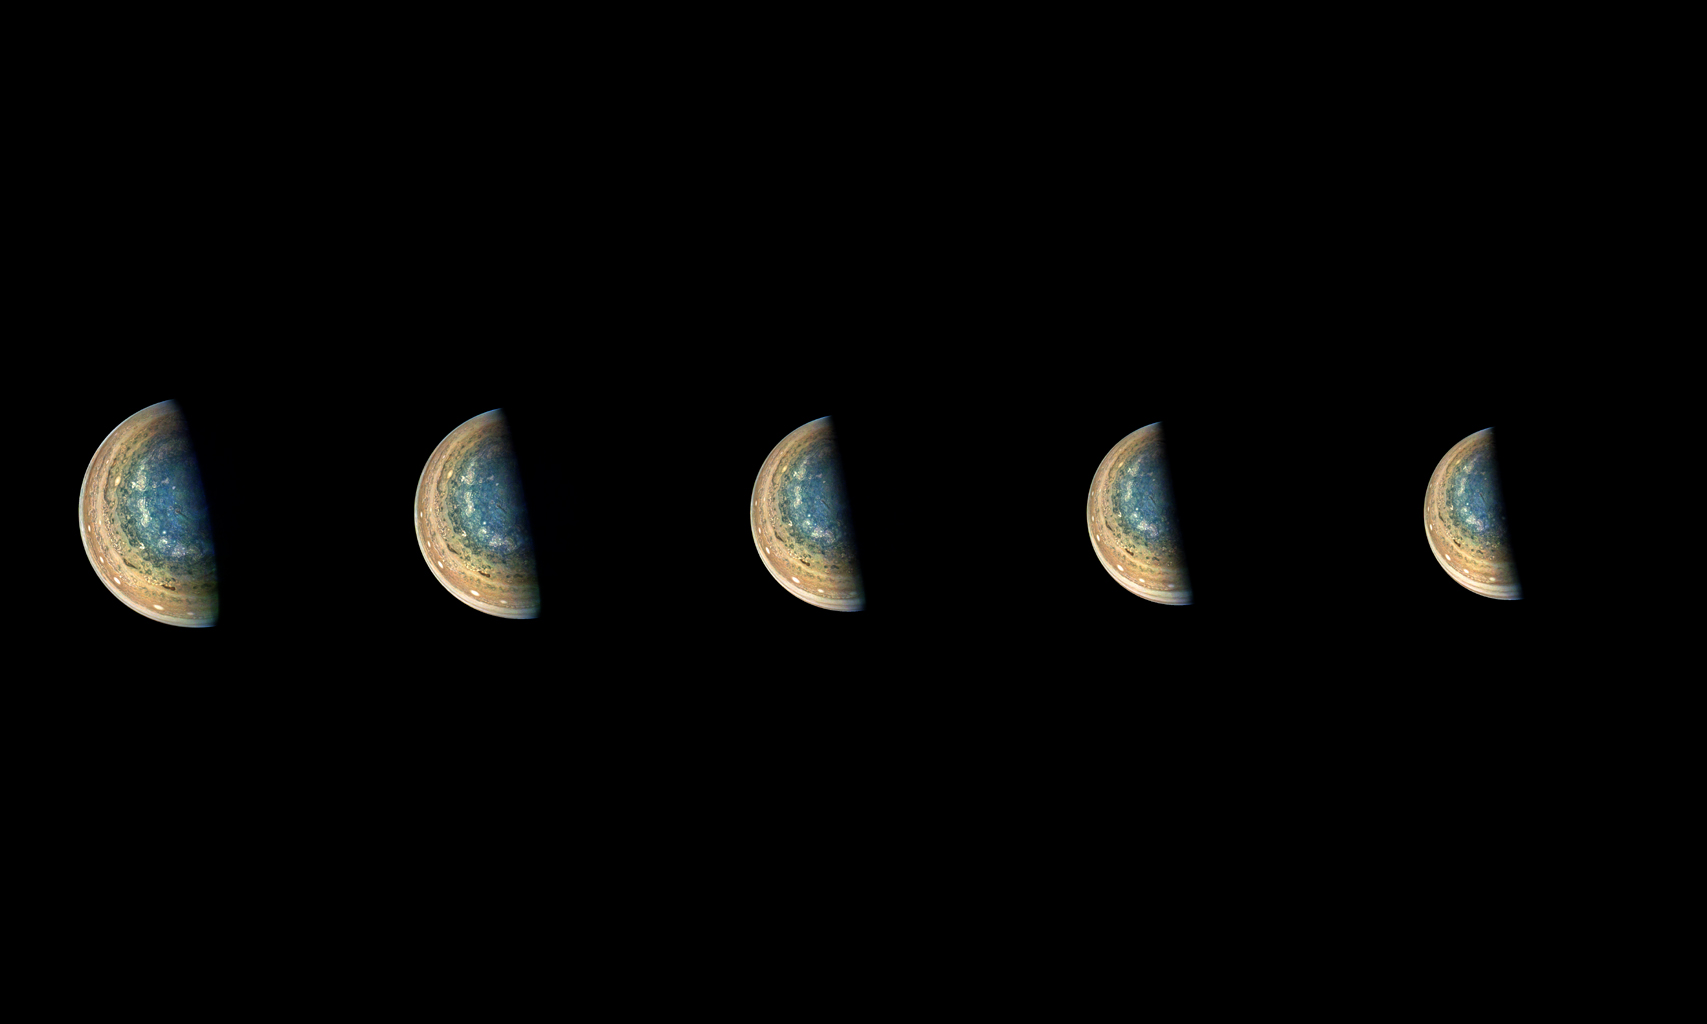 This series of images from NASA's Juno spacecraft taken on Feb. 7, 2018 captures cloud patterns near Jupiter's south pole, looking up towards the planet's equator.